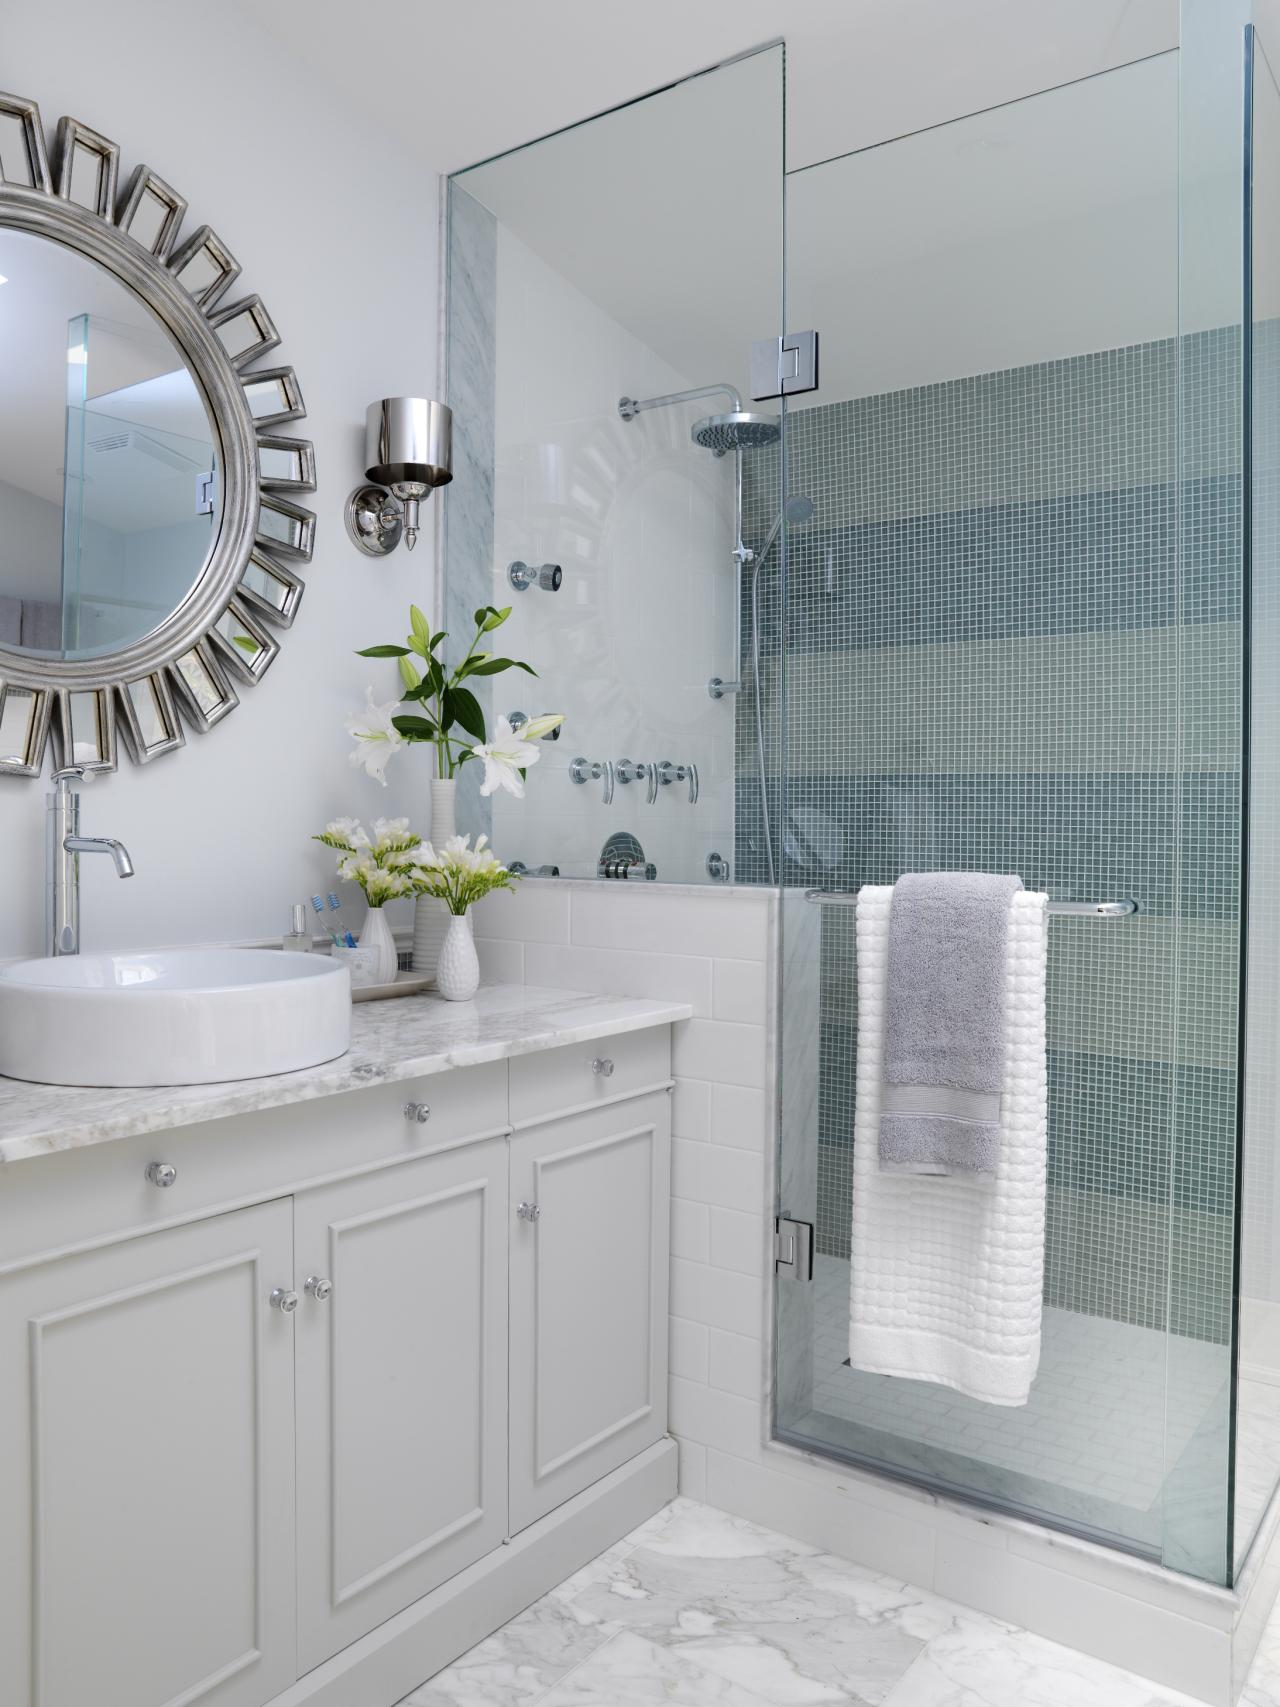 Fascinating Interior Bathroom With Cabinet also Showering Area and Mirror